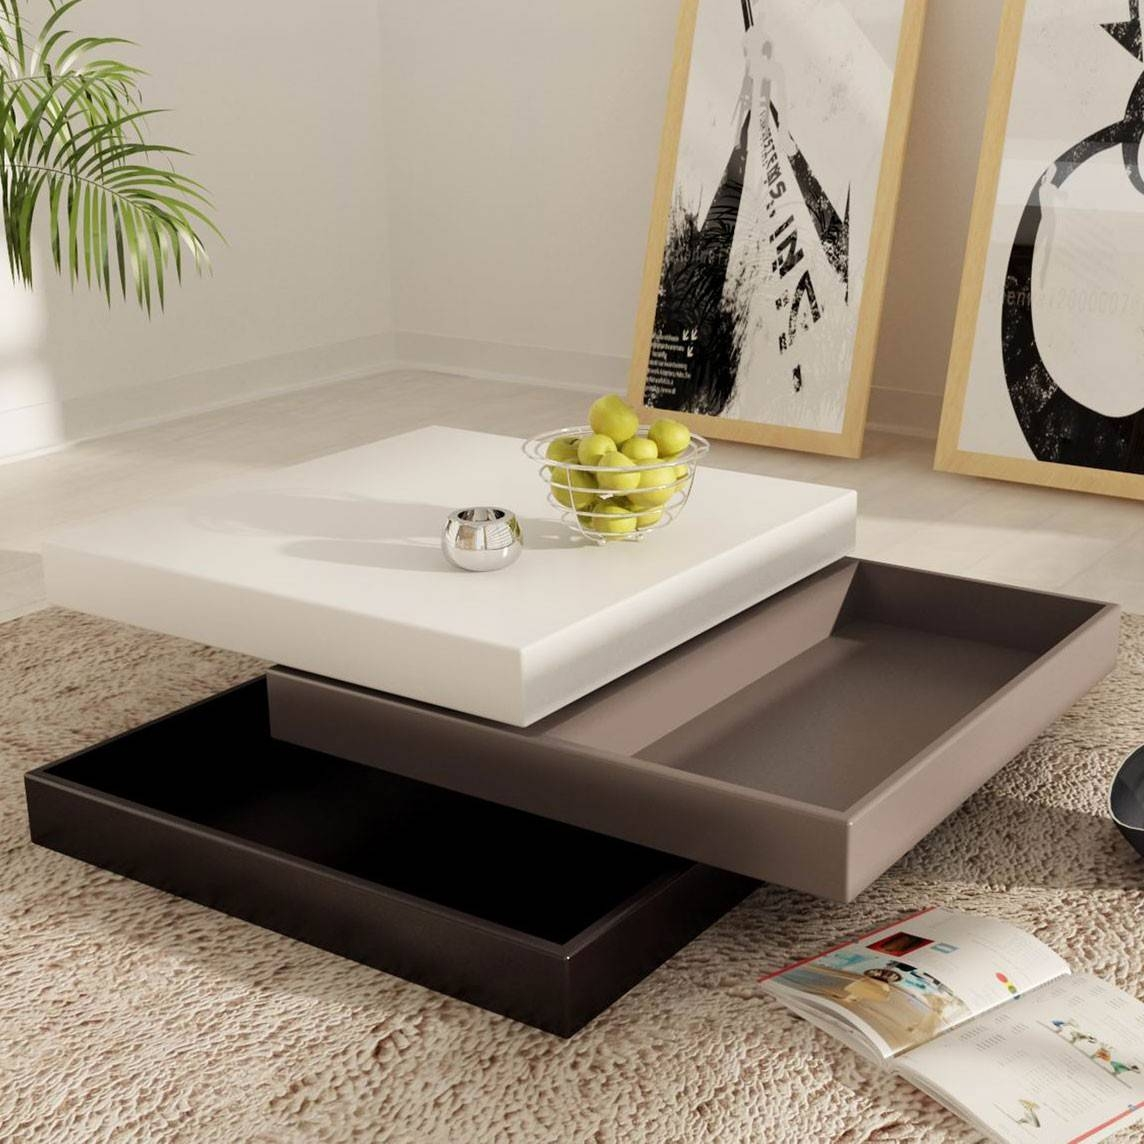 Square Farmhouse Coffee Tables – Functional Square Coffee Tables In Cream Coffee Tables With Drawers (View 24 of 25)